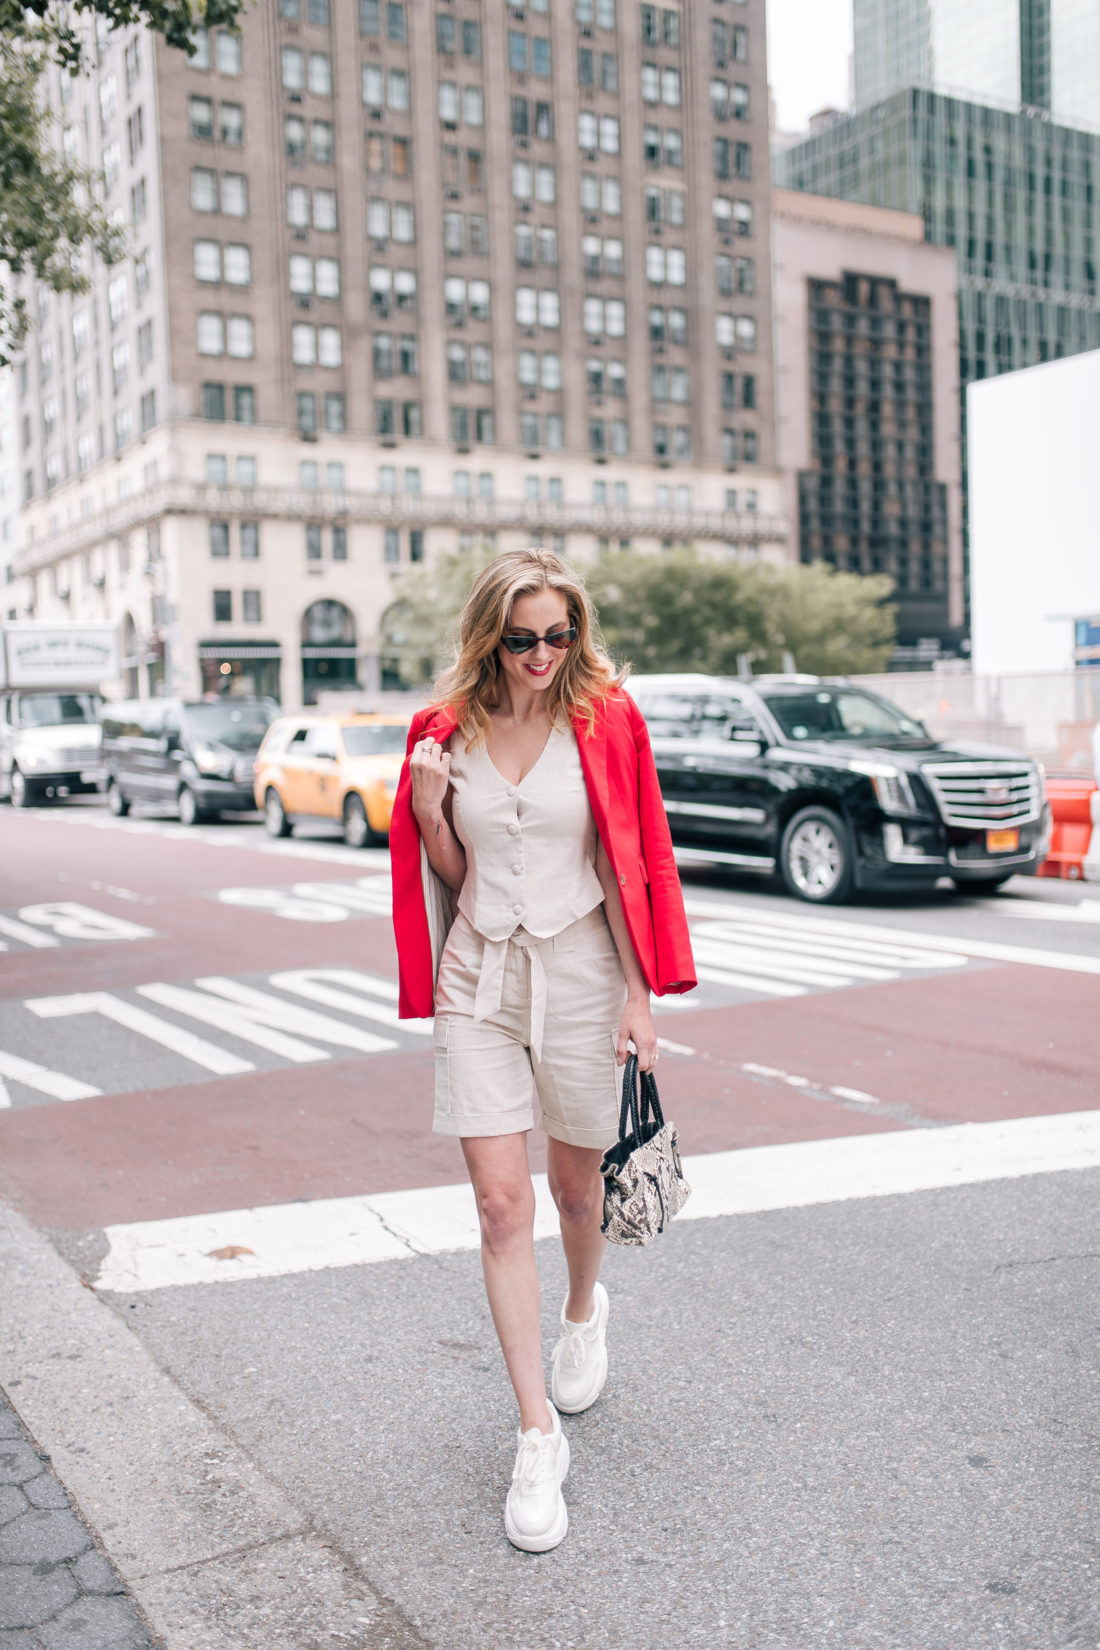 Eva Amurri Martino crosses the street in her native NYC